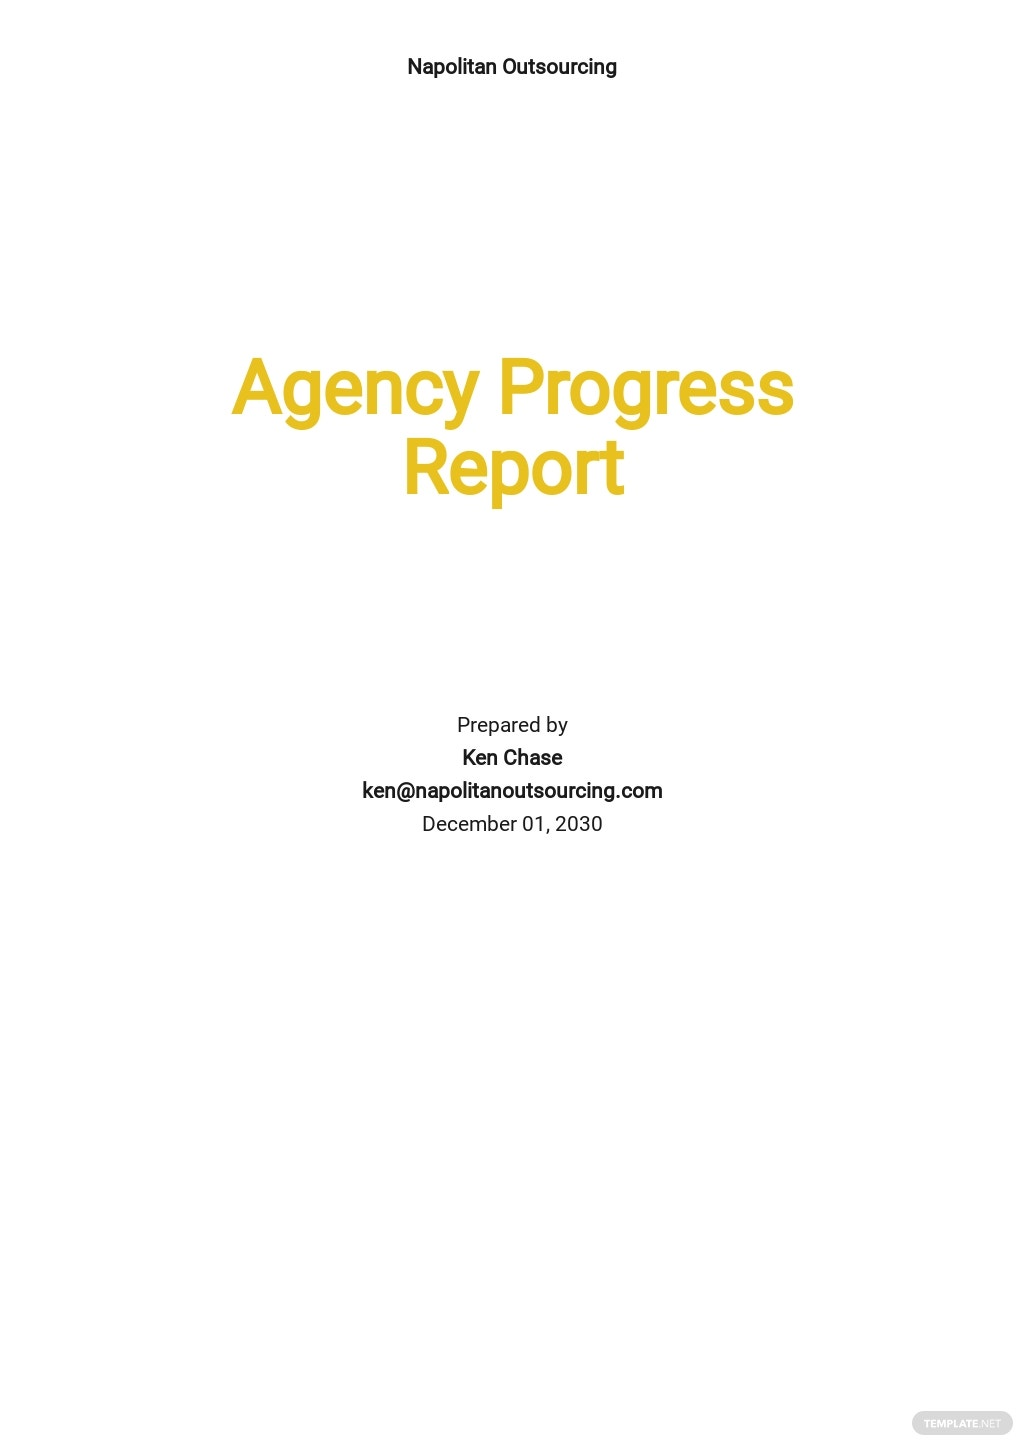 Agency Progress Report Template